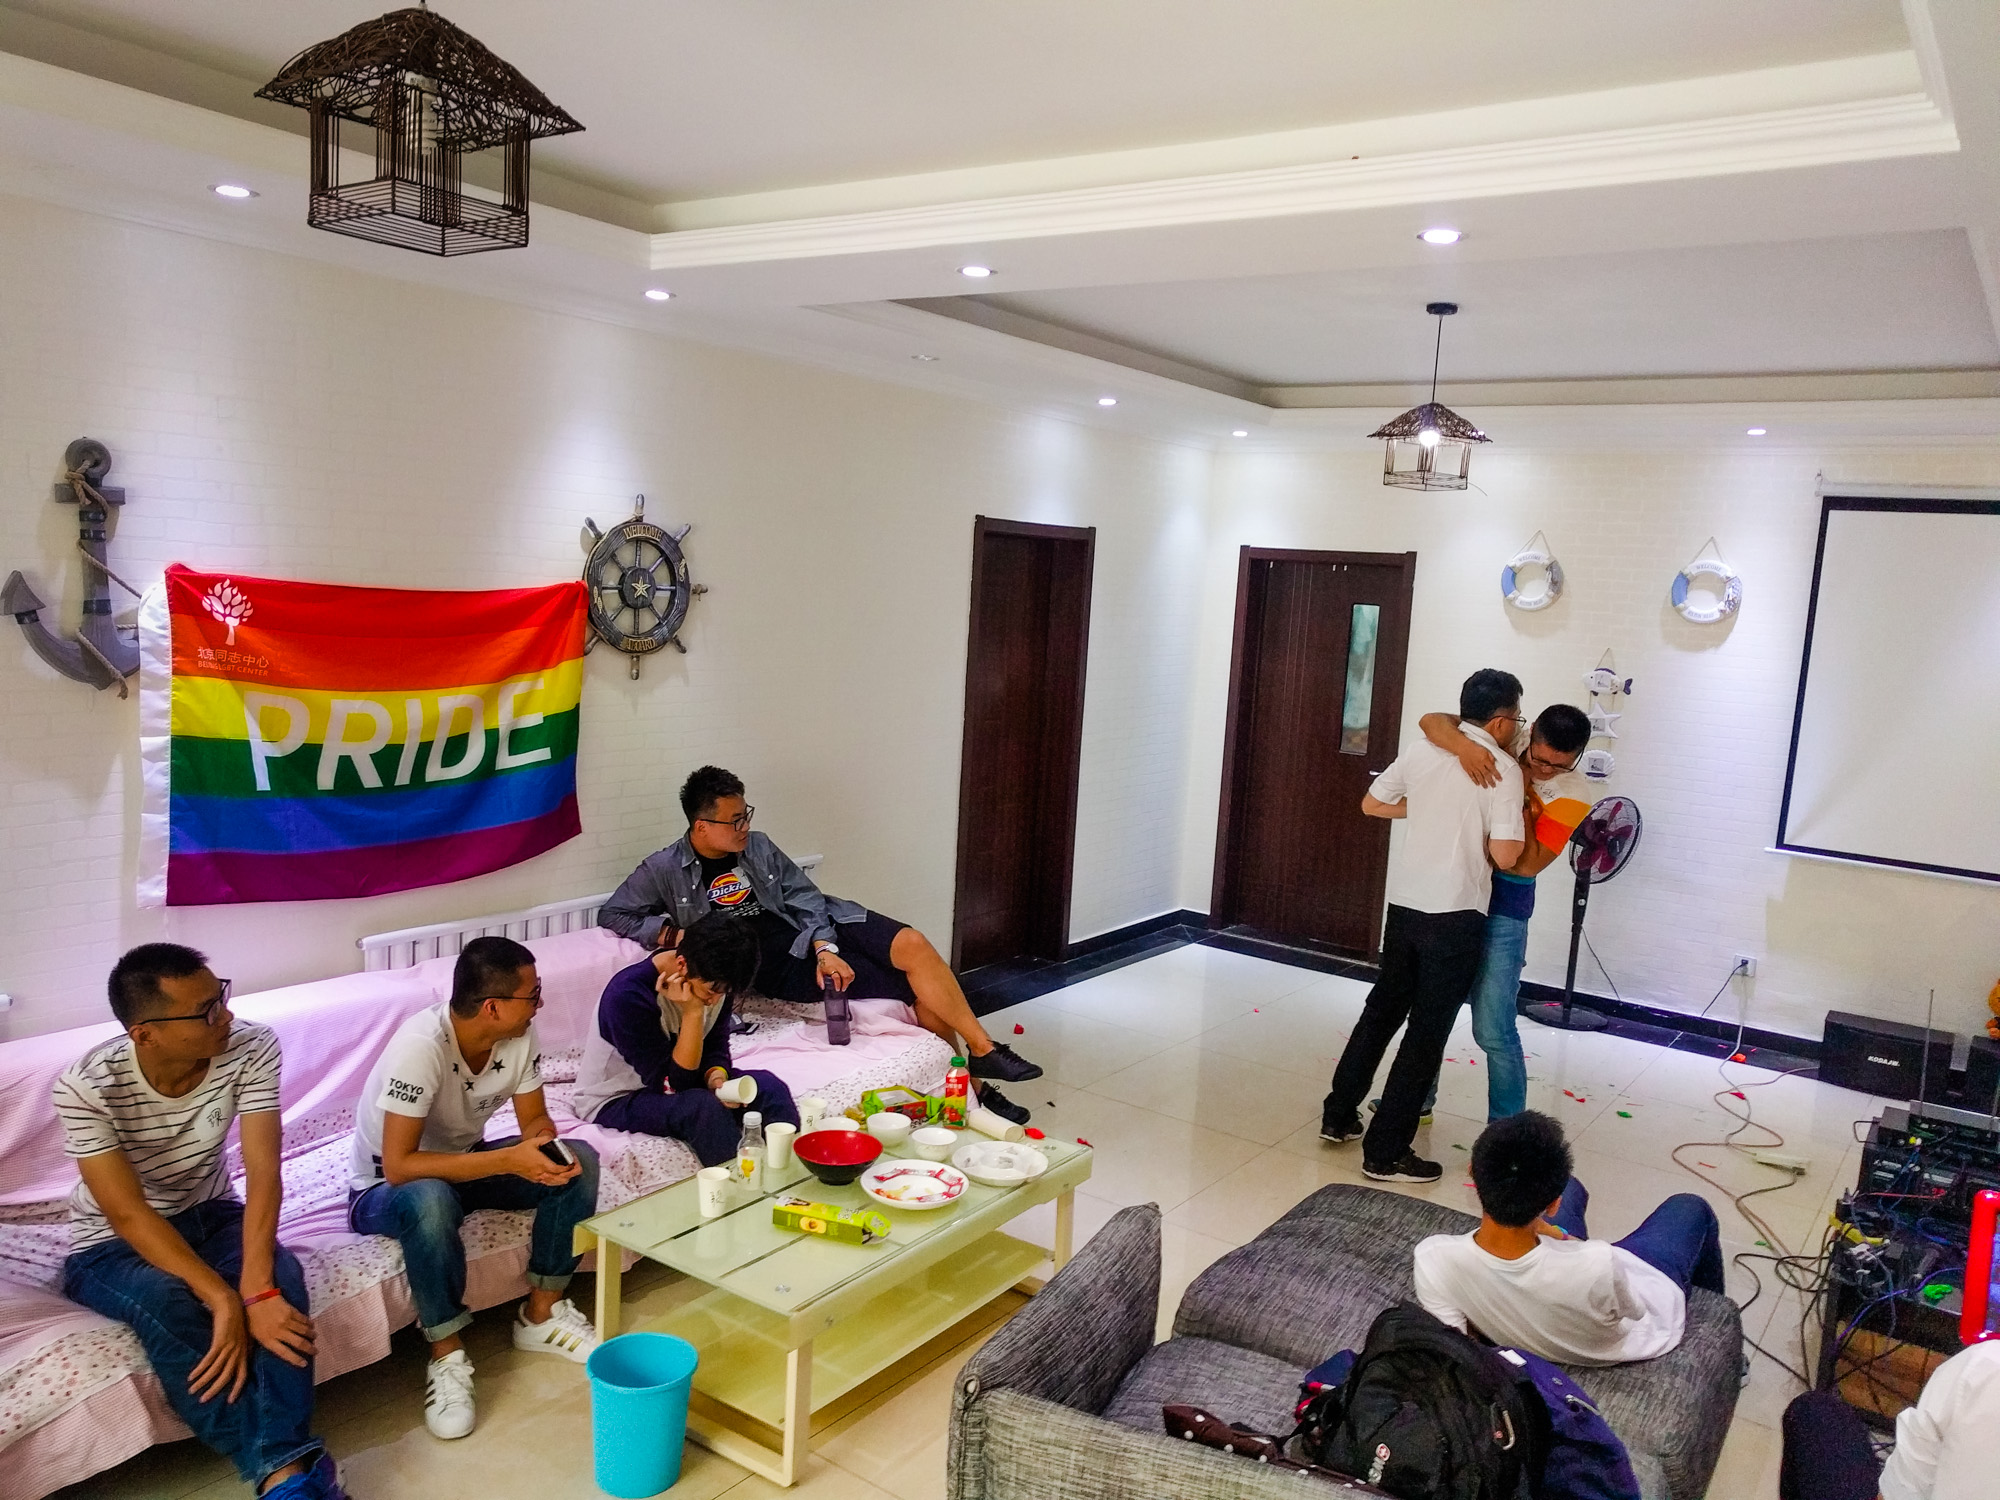 chinese men celebrating pride woth big rainbow flag in their room